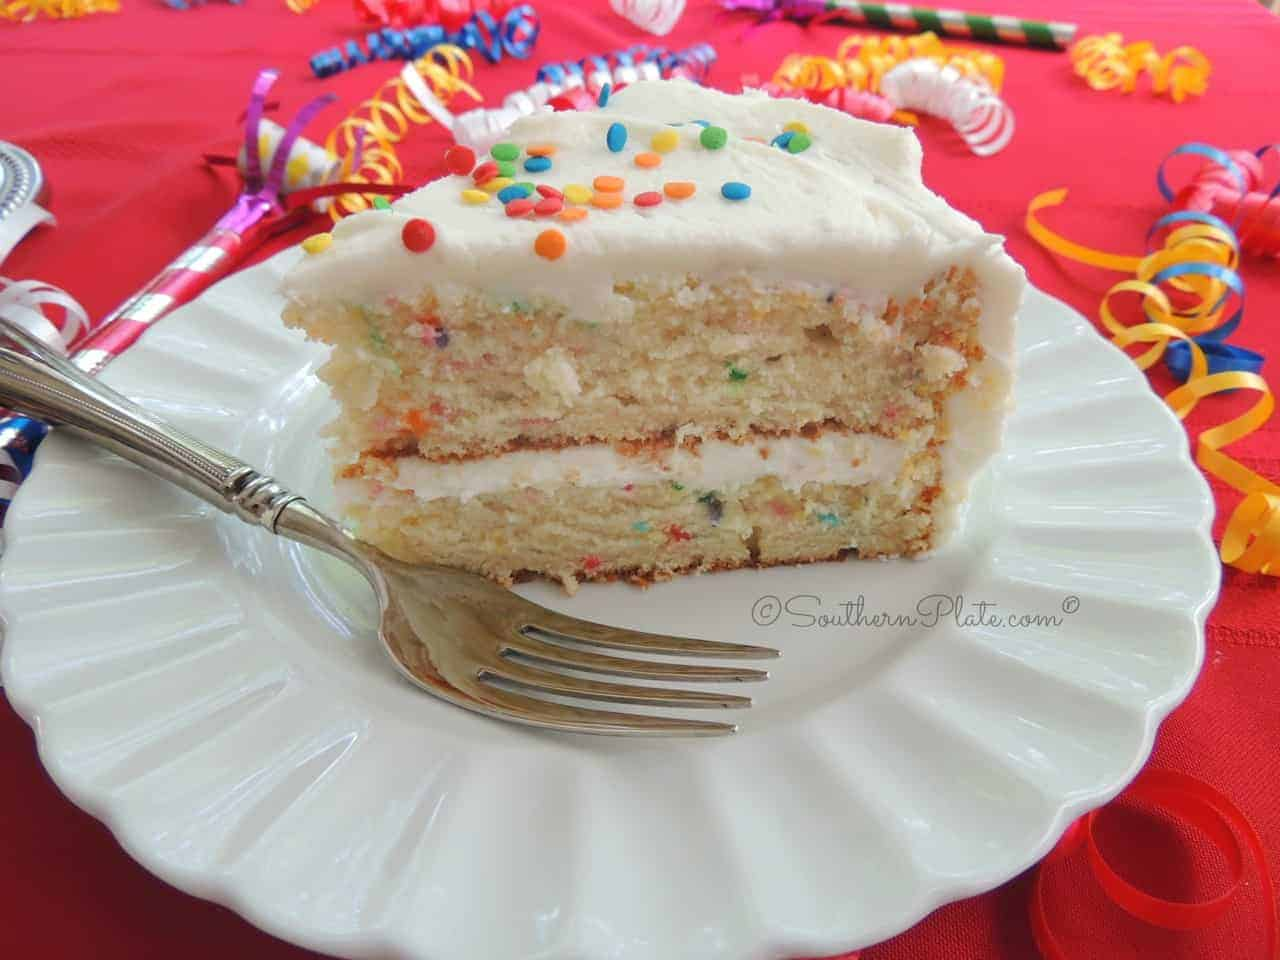 Easy Birthday Cake Recipe From Scratch Southern Plate